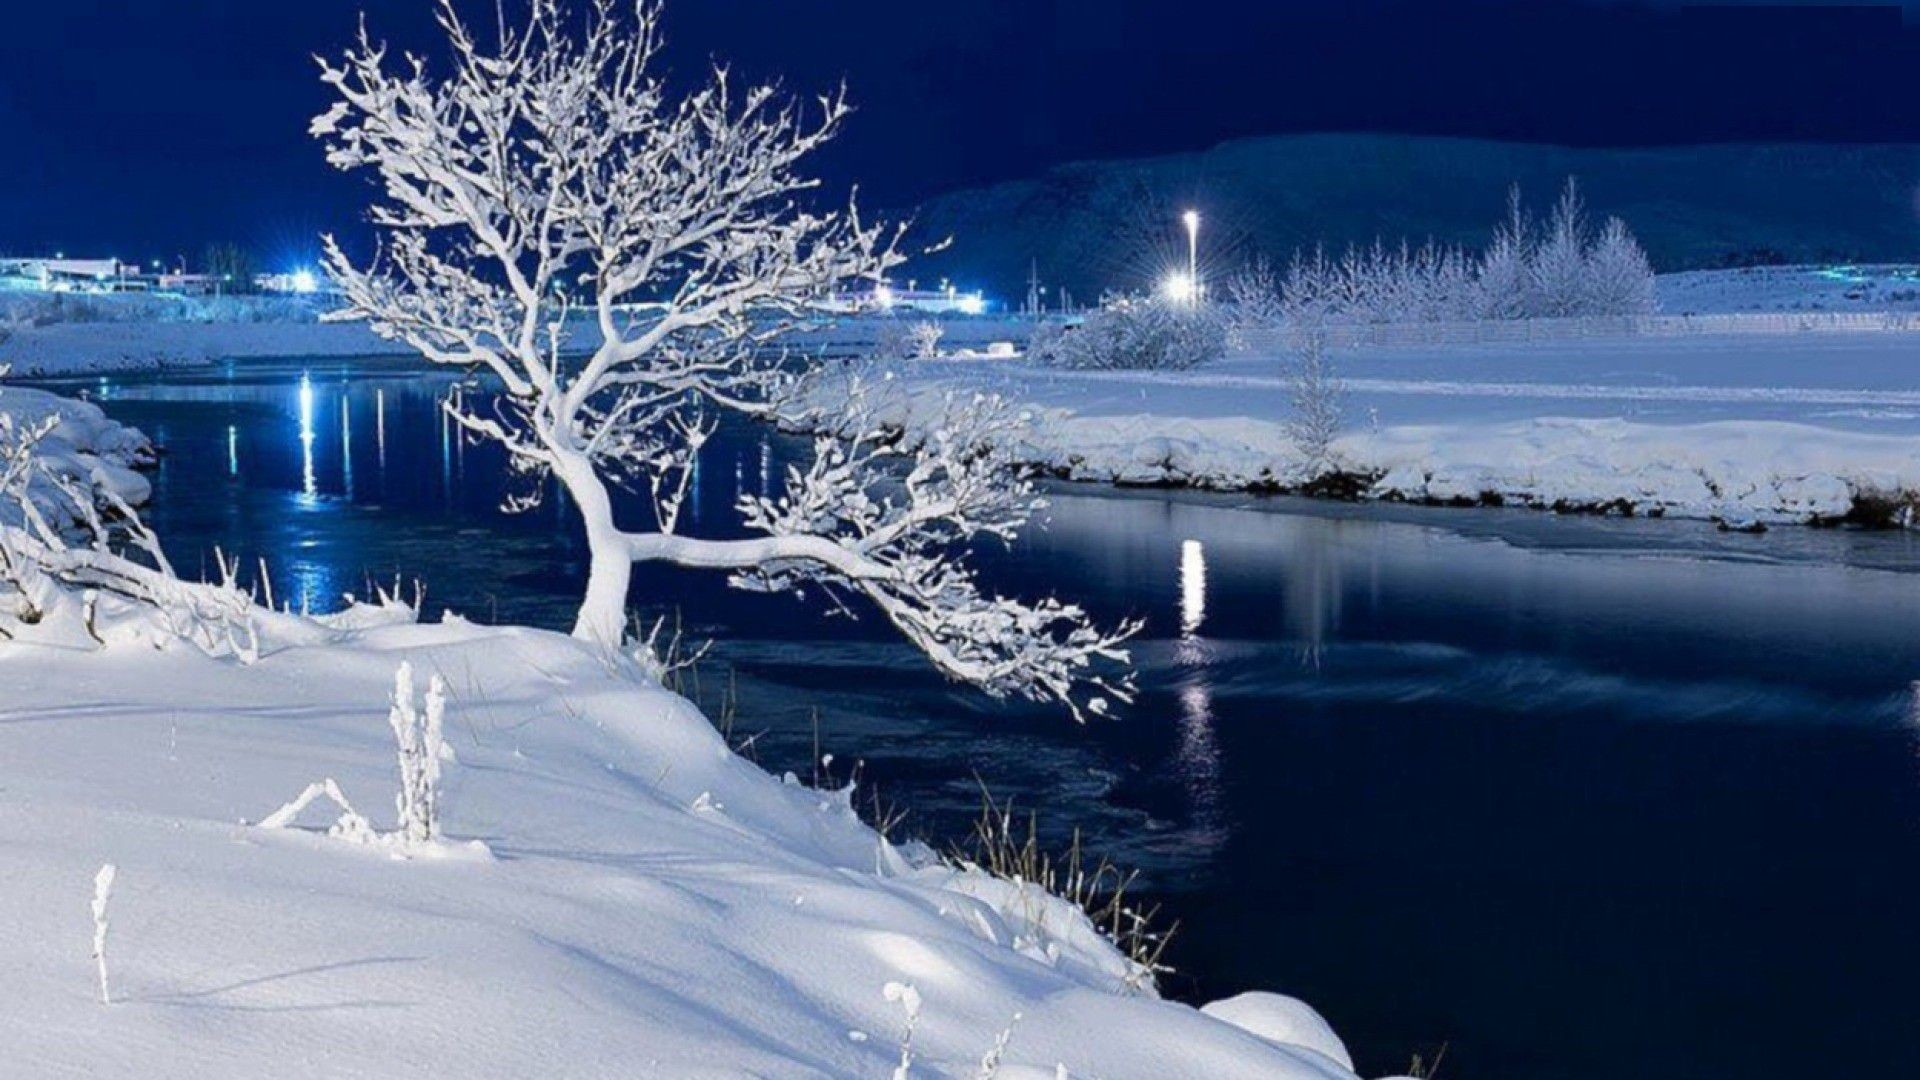 Snowy Night Wallpapers - Top Free Snowy Night Backgrounds - WallpaperAccess